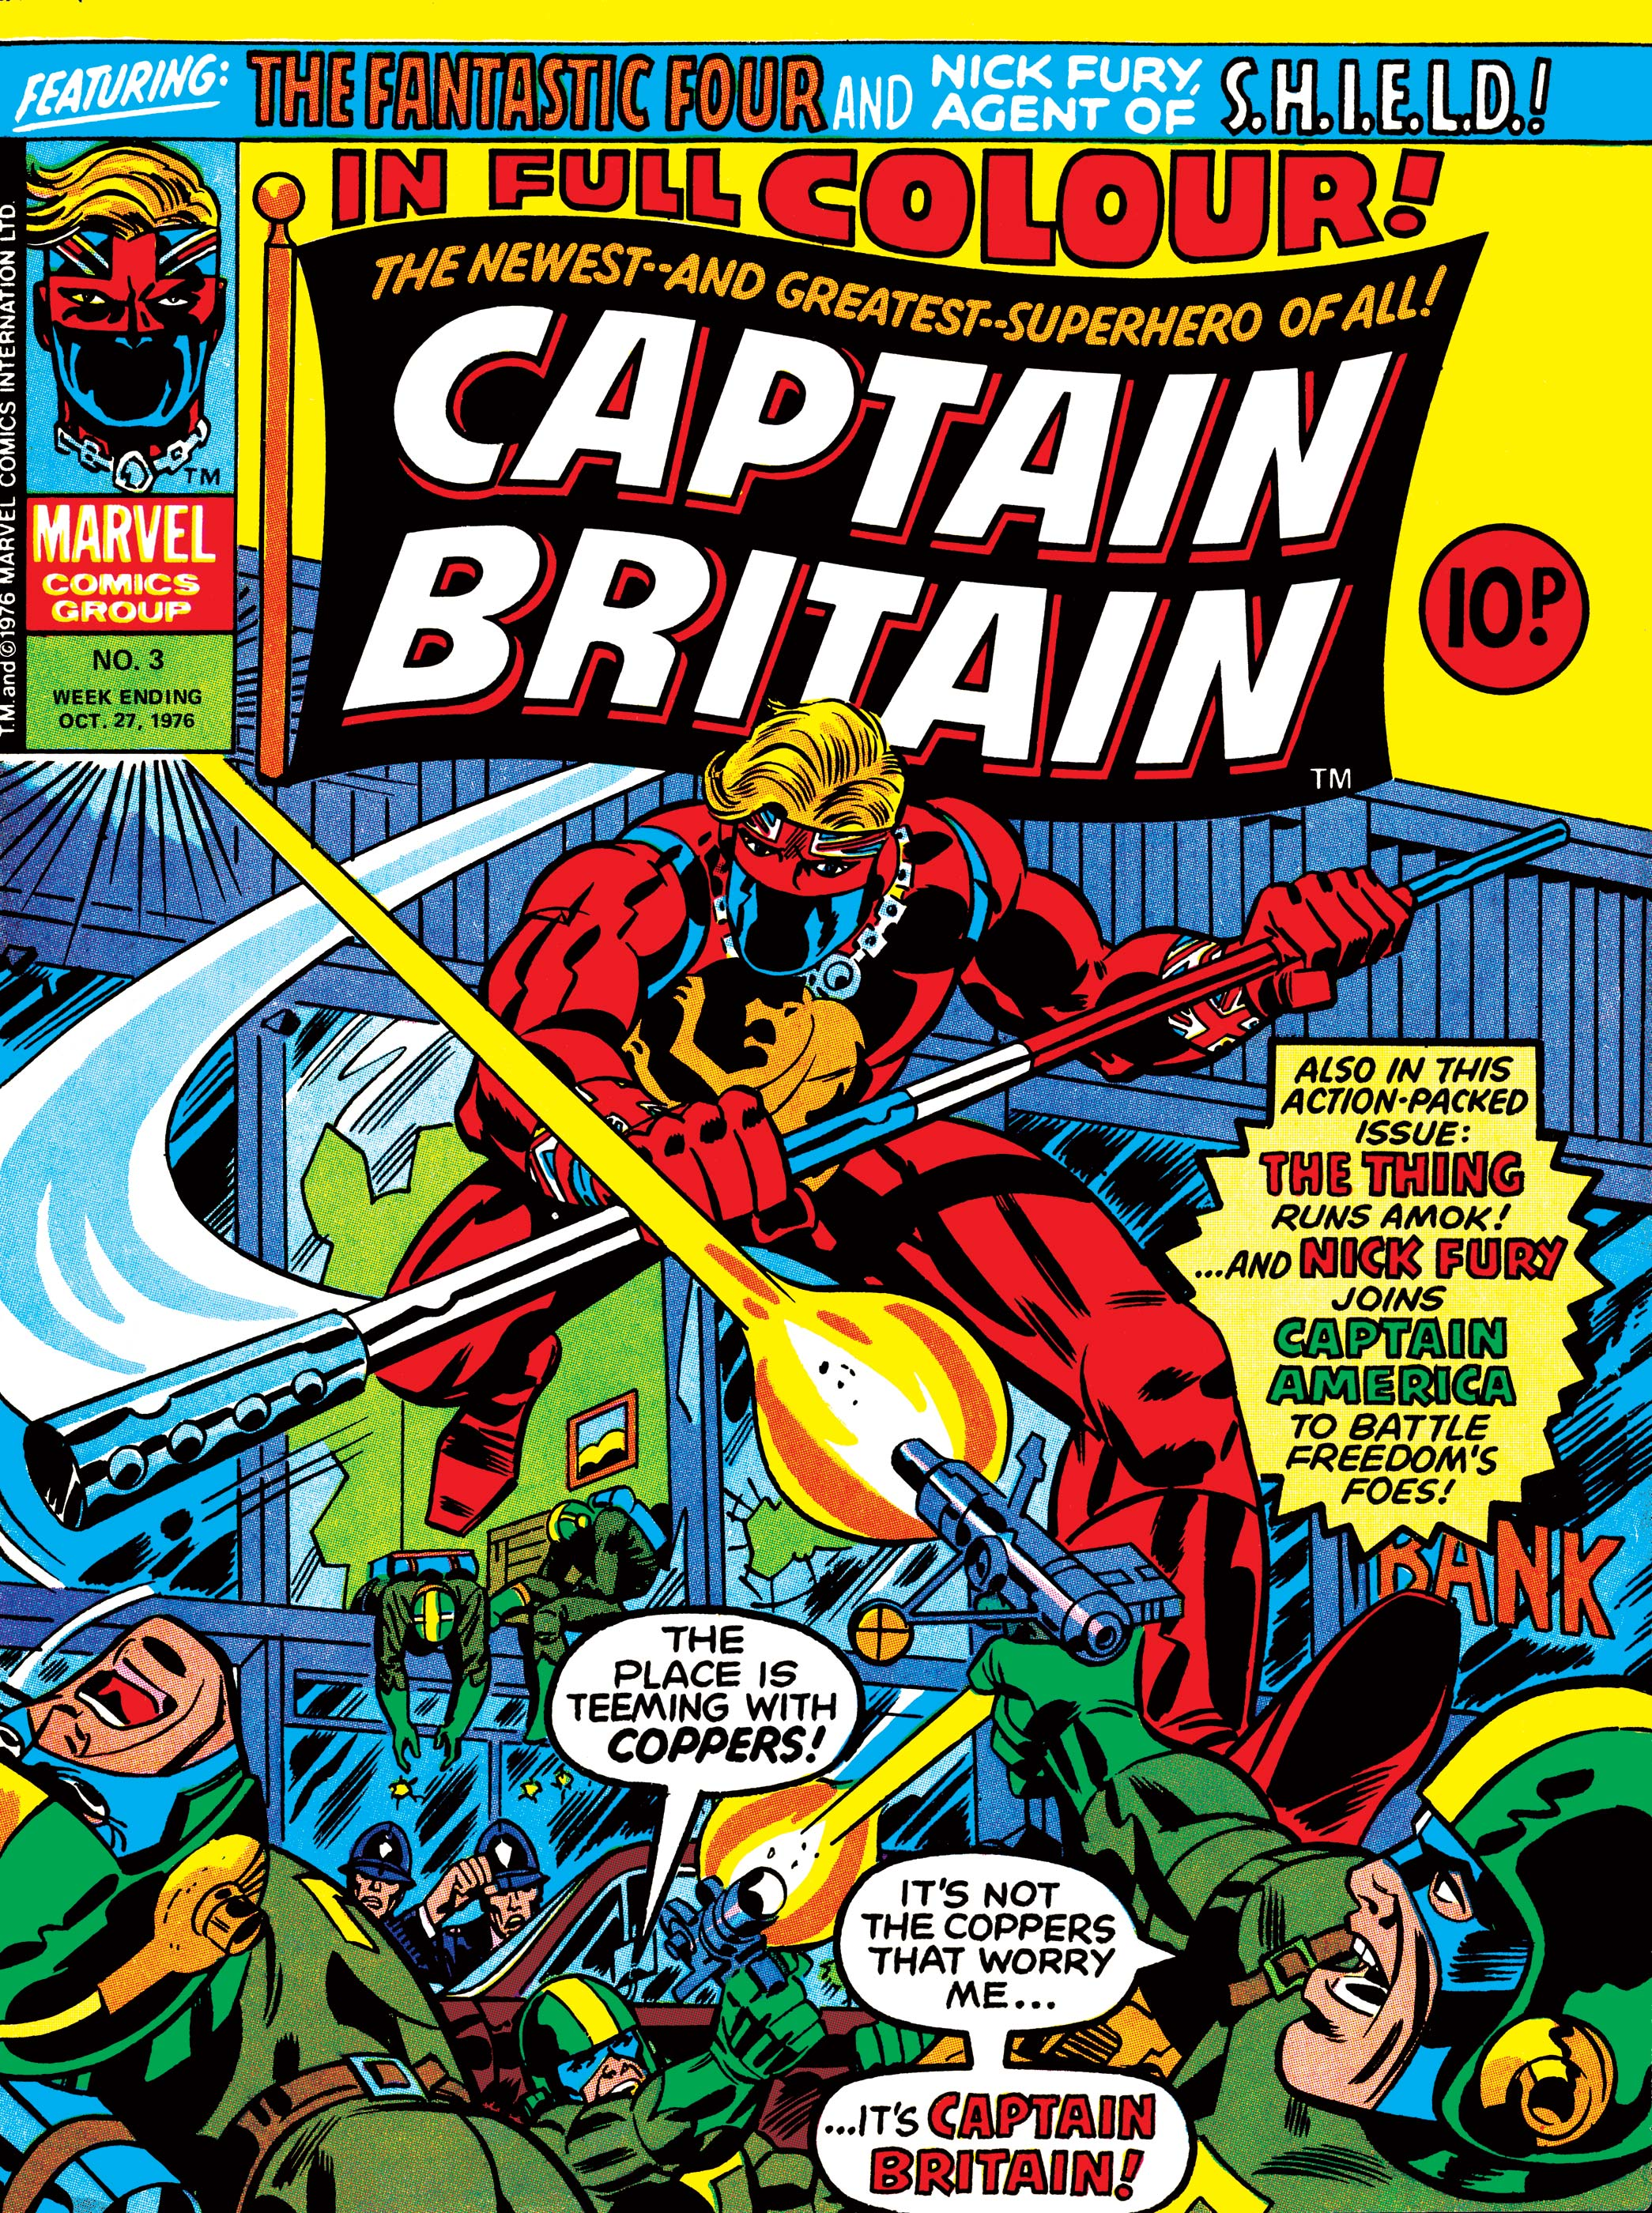 Captain Britain (1976) #3